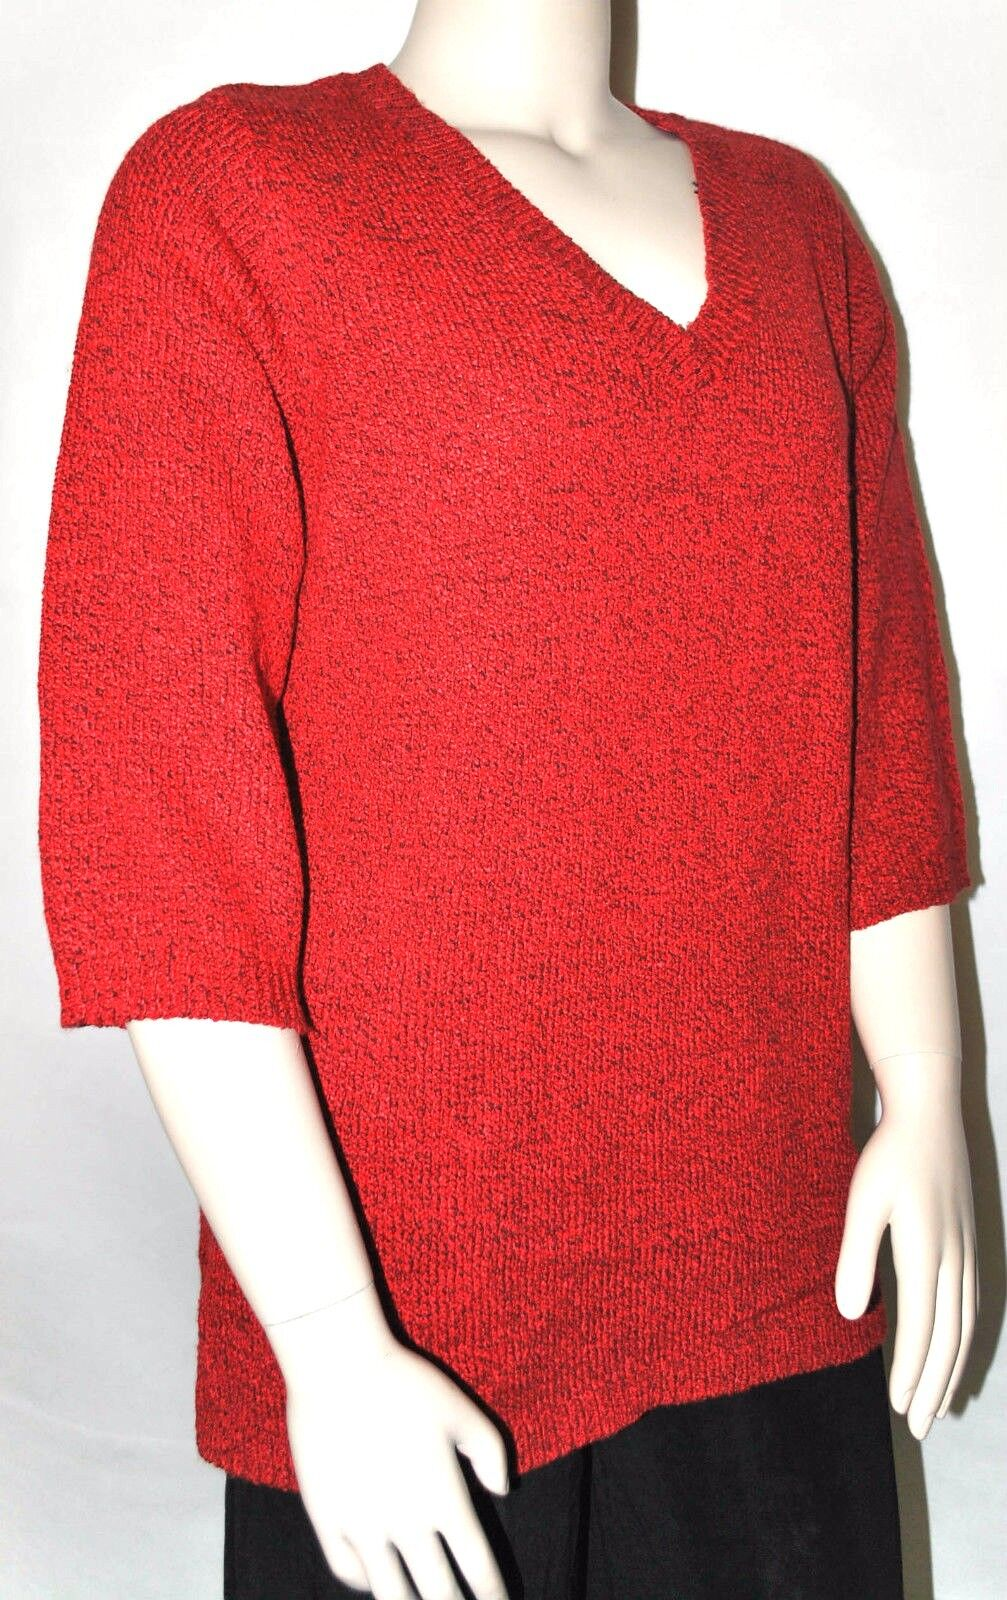 Karen Scott Sweater Plus Size 0x Red Marled 3/4 Sleeve Vneck Tunic ...